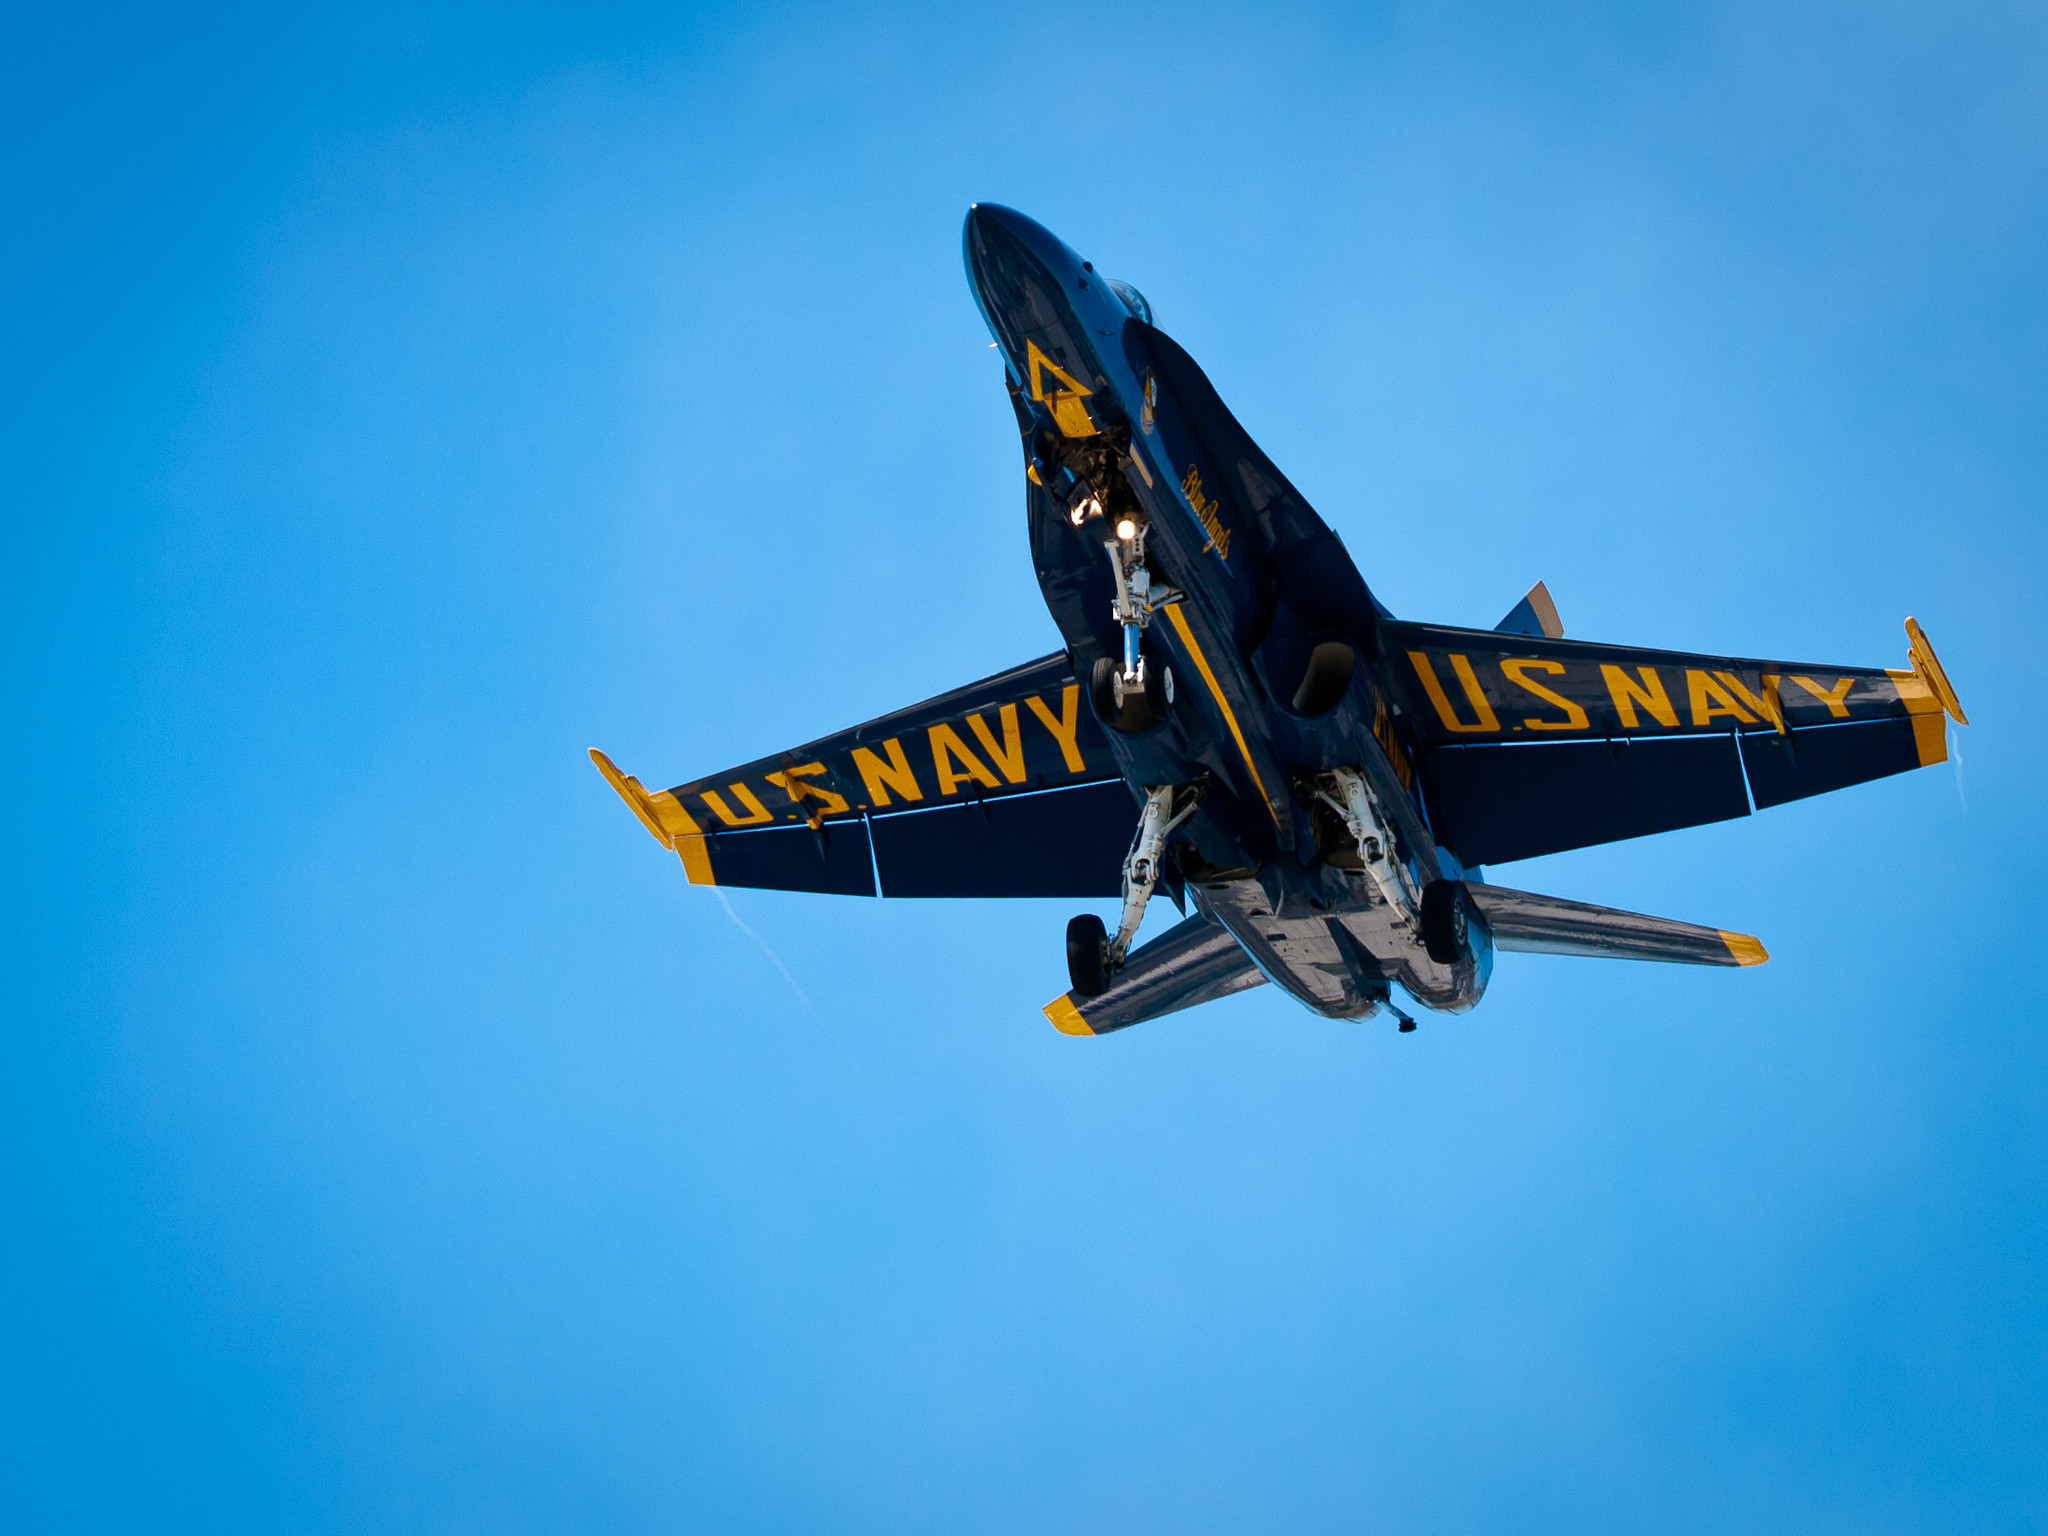 2048x1536 Blue Angels images blue angels HD wallpaper and background photos